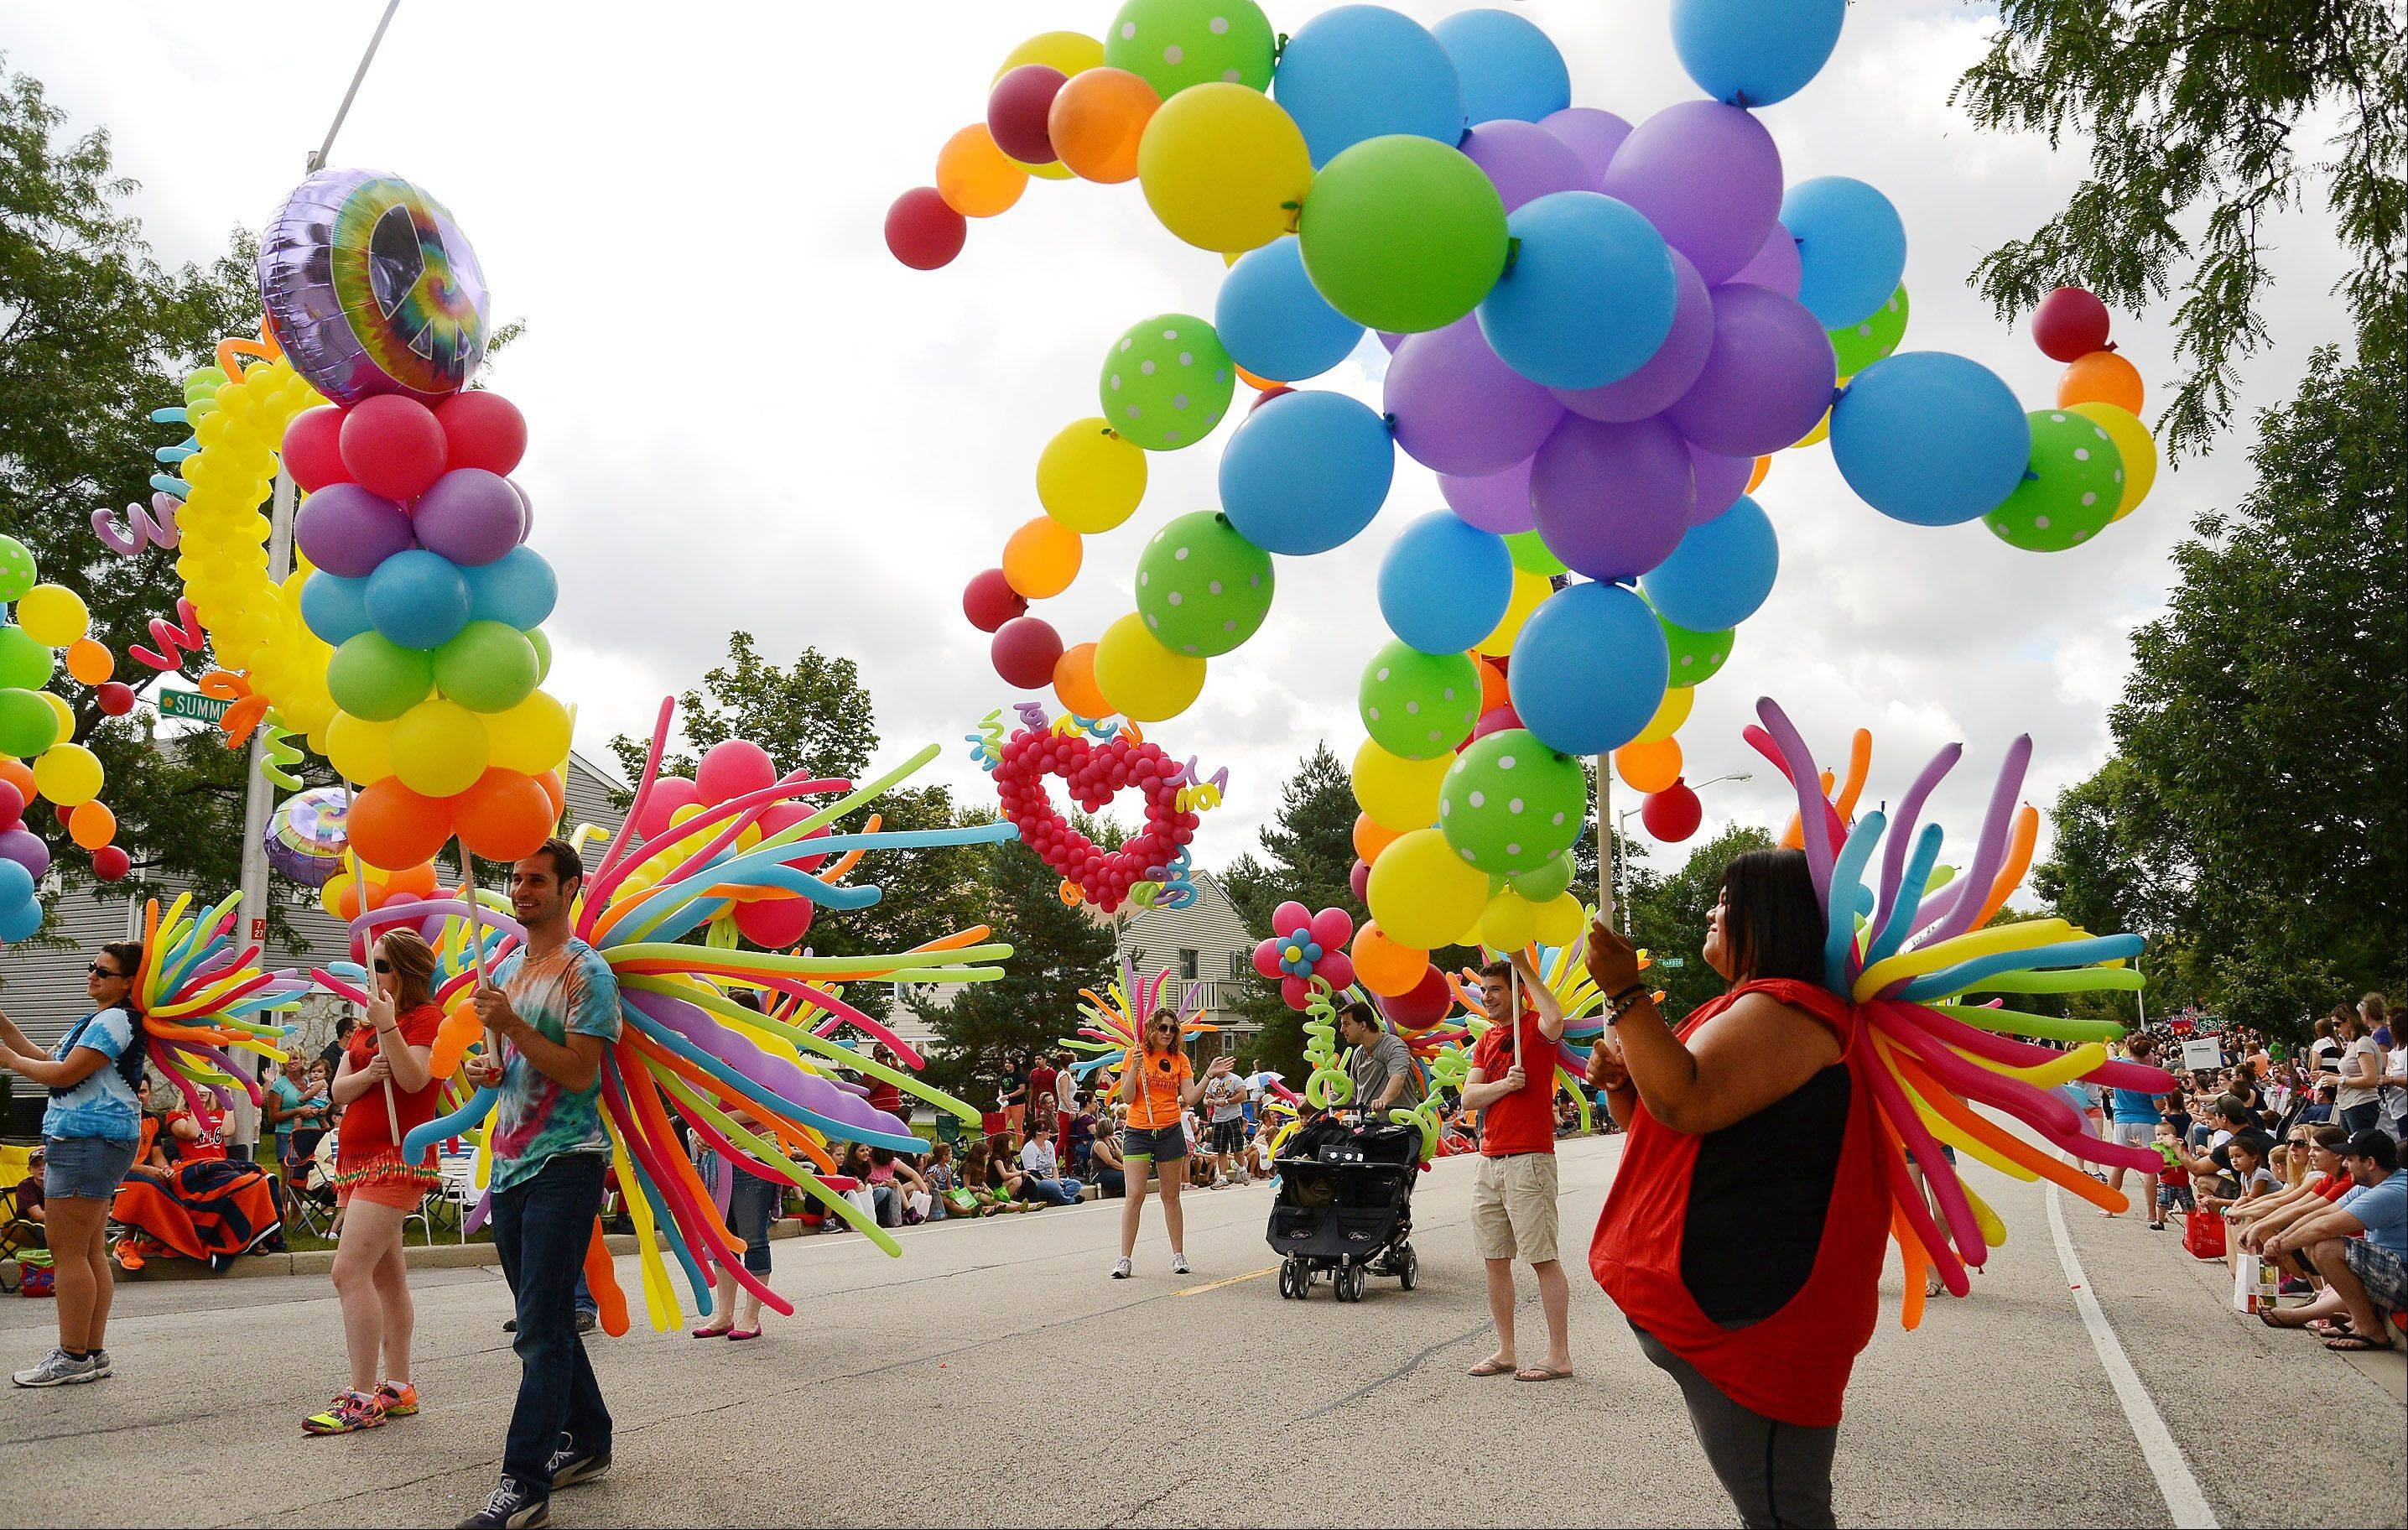 Yomara Ibarra, right, of BalloonsbyTommy.com, moves along the Septemberfest parade route with balloons on Labor Day in Schaumburg.